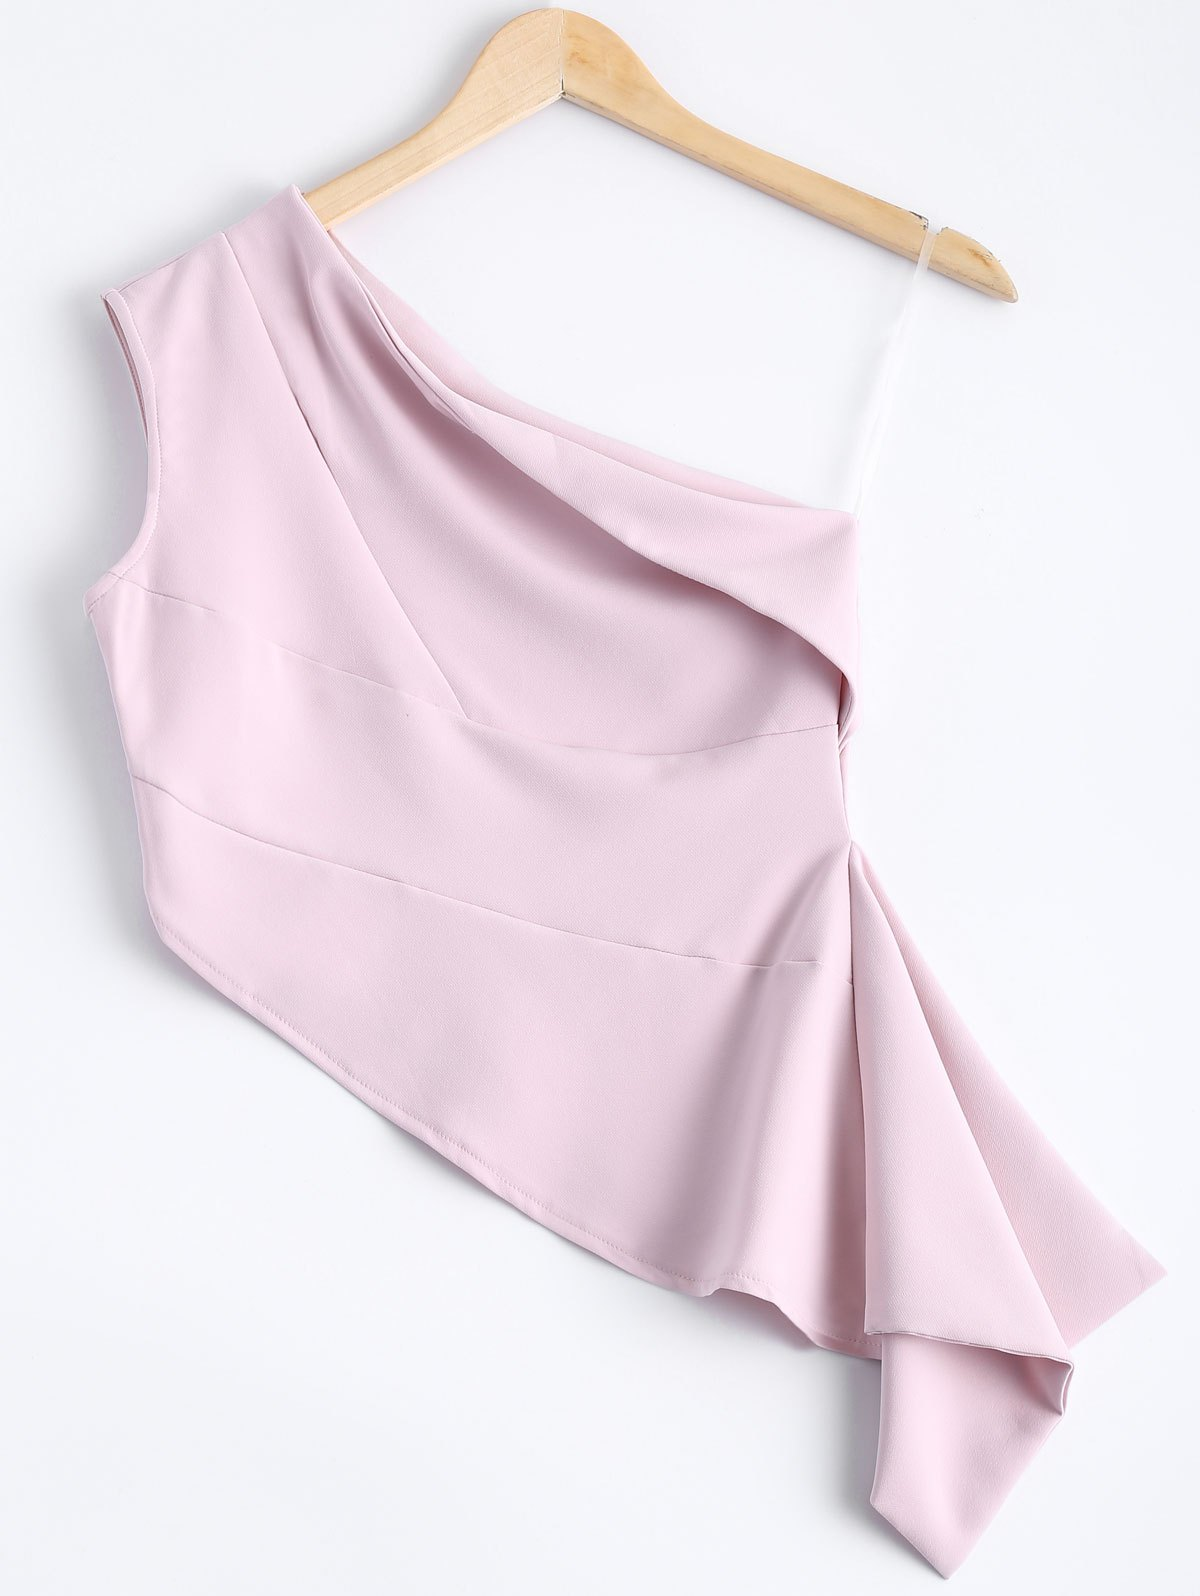 Stylish Women's Solid Color One-Shoulder Asymmetric Top - LIGHT PINK M